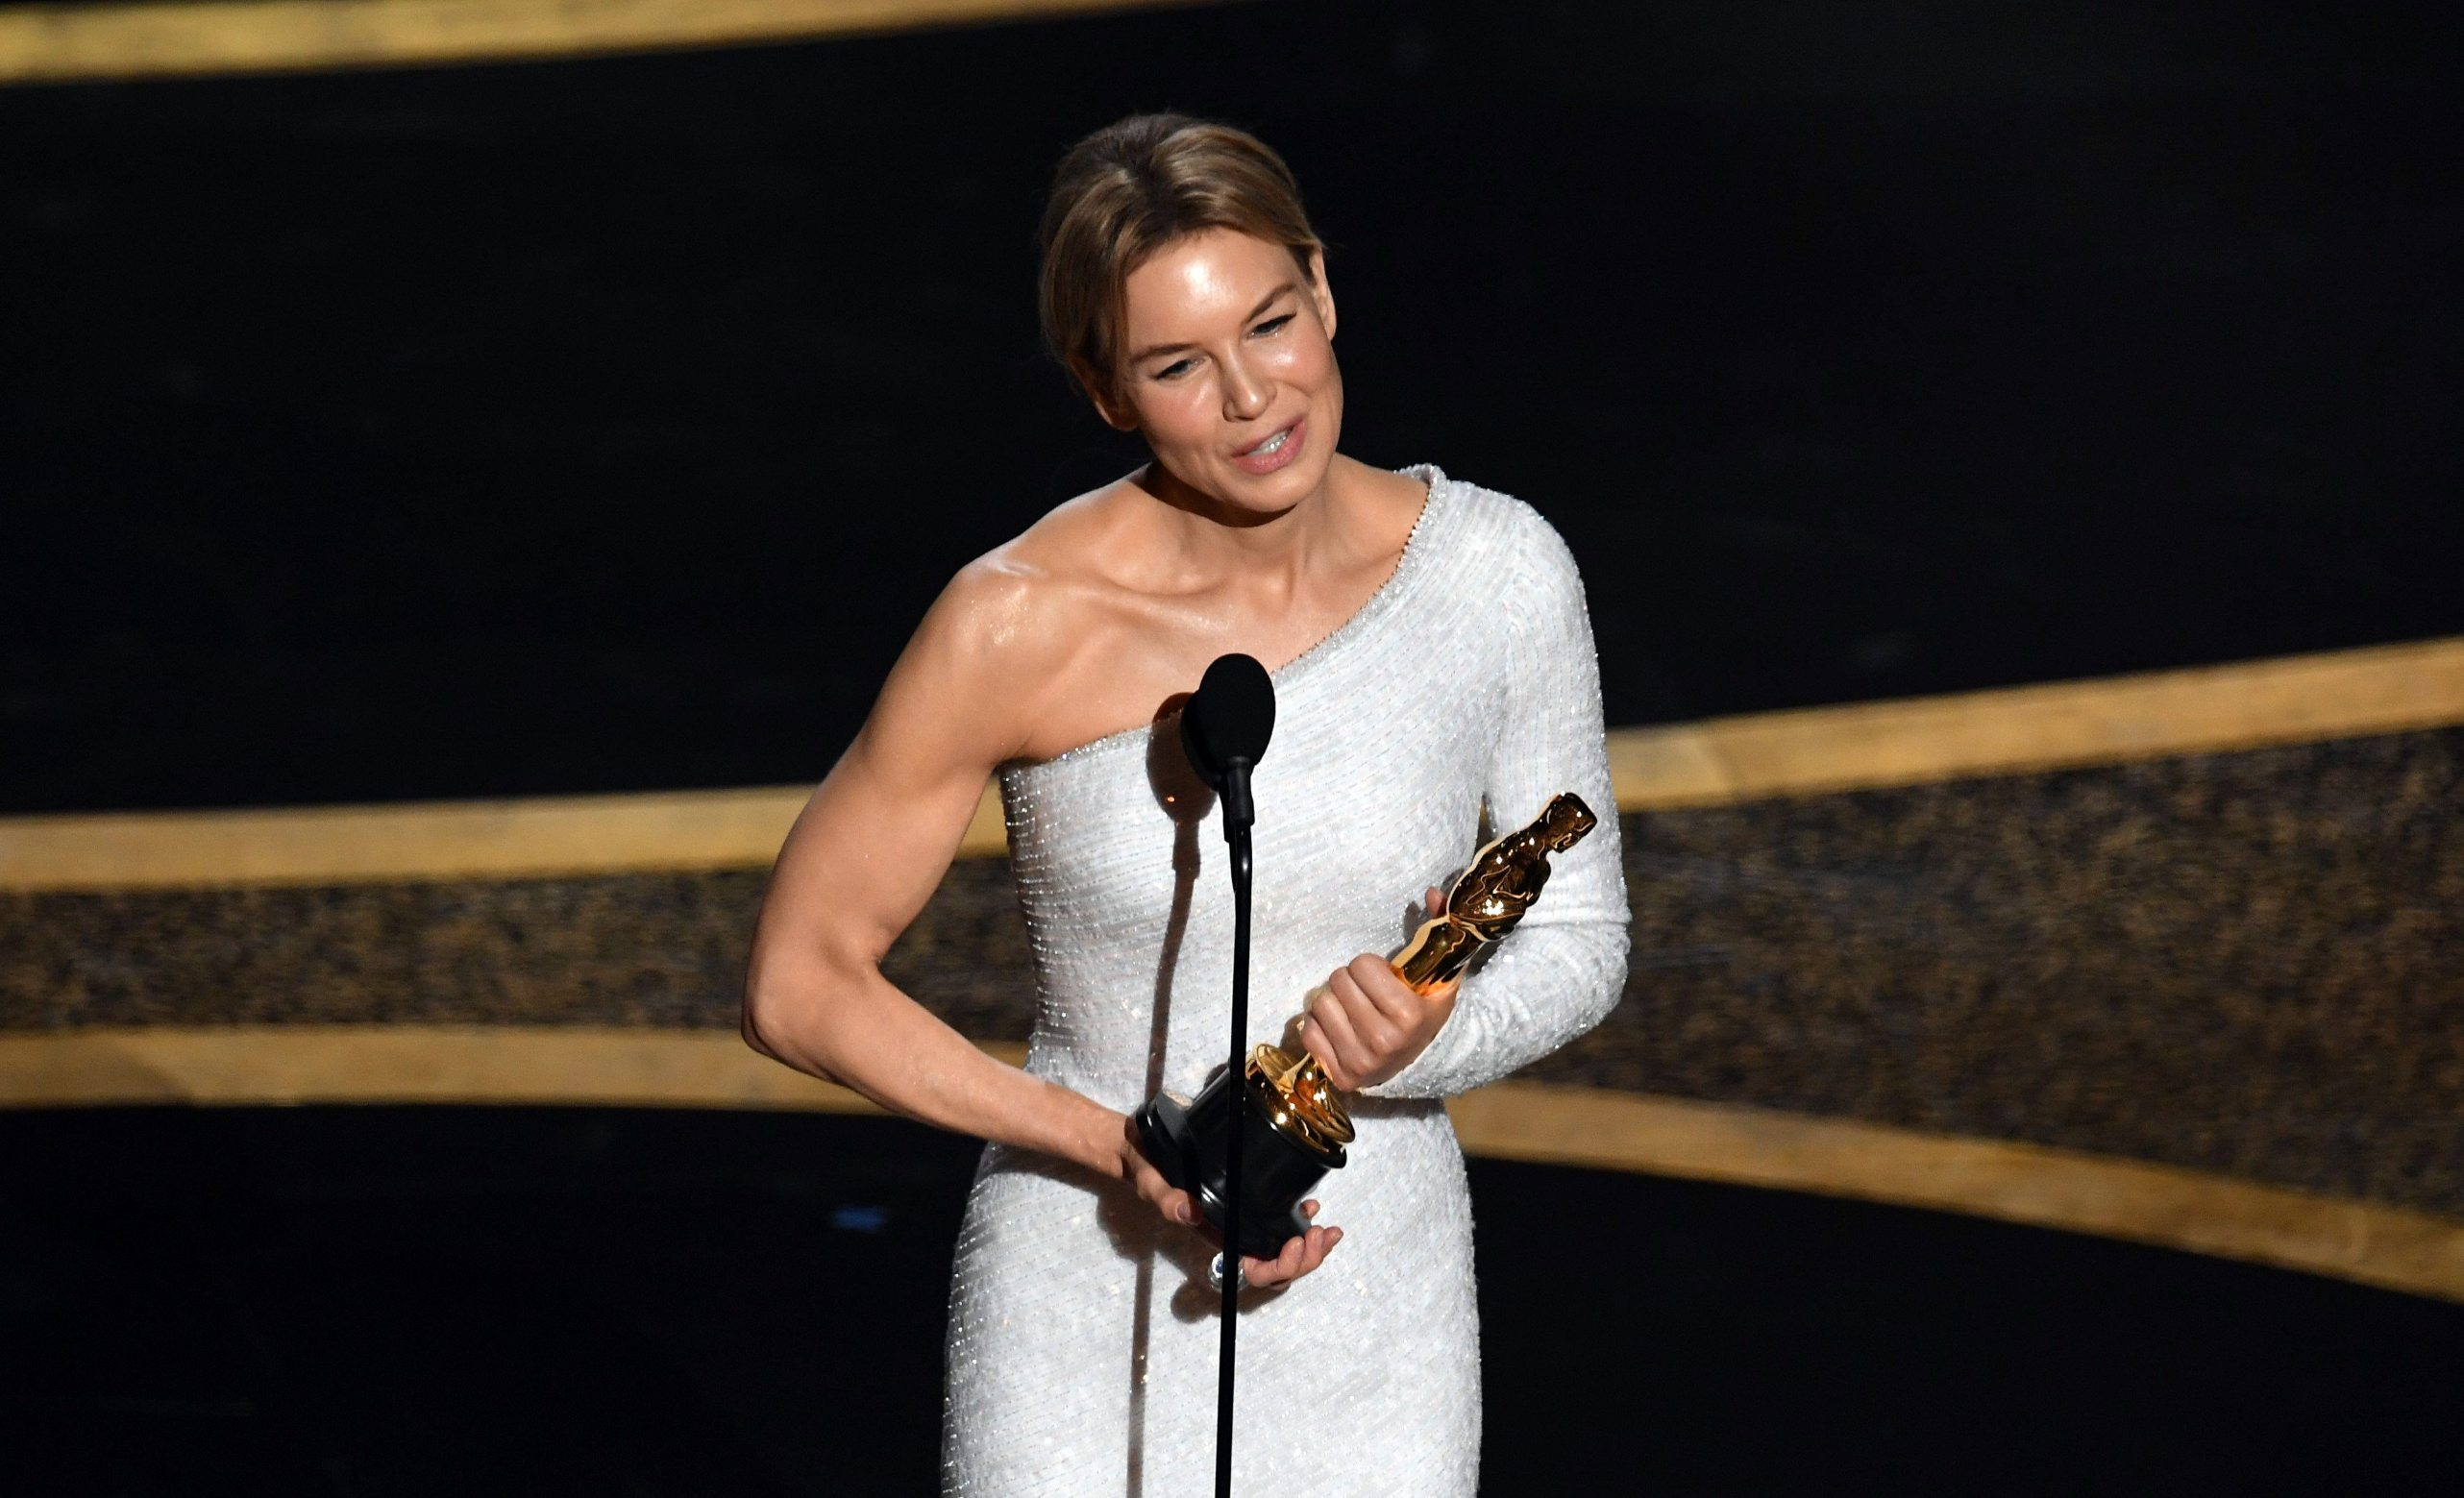 HOLLYWOOD, CALIFORNIA - FEBRUARY 09: Renée Zellweger accepts the Actress in a Leading Role award for 'Judy' onstage during the 92nd Annual Academy Awards at Dolby Theatre on February 09, 2020 in Hollywood, California.   Kevin Winter/Getty Images/AFP == FOR NEWSPAPERS, INTERNET, TELCOS & TELEVISION USE ONLY ==